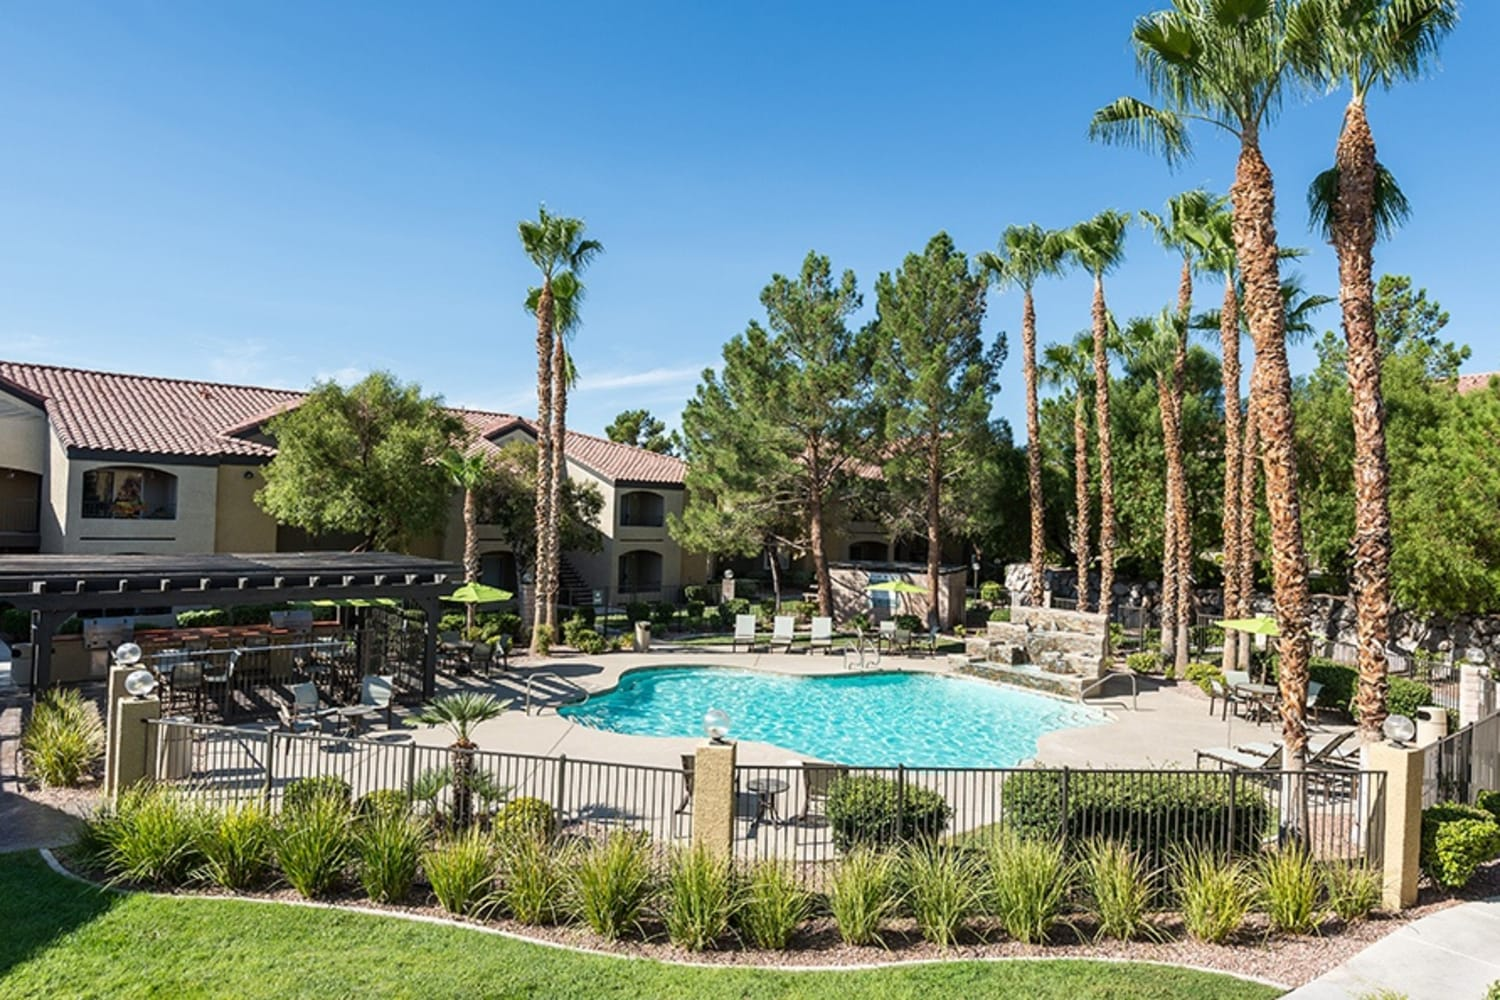 Swimming pool and palm trees at Rancho Destino Apartments in Las Vegas, Nevada